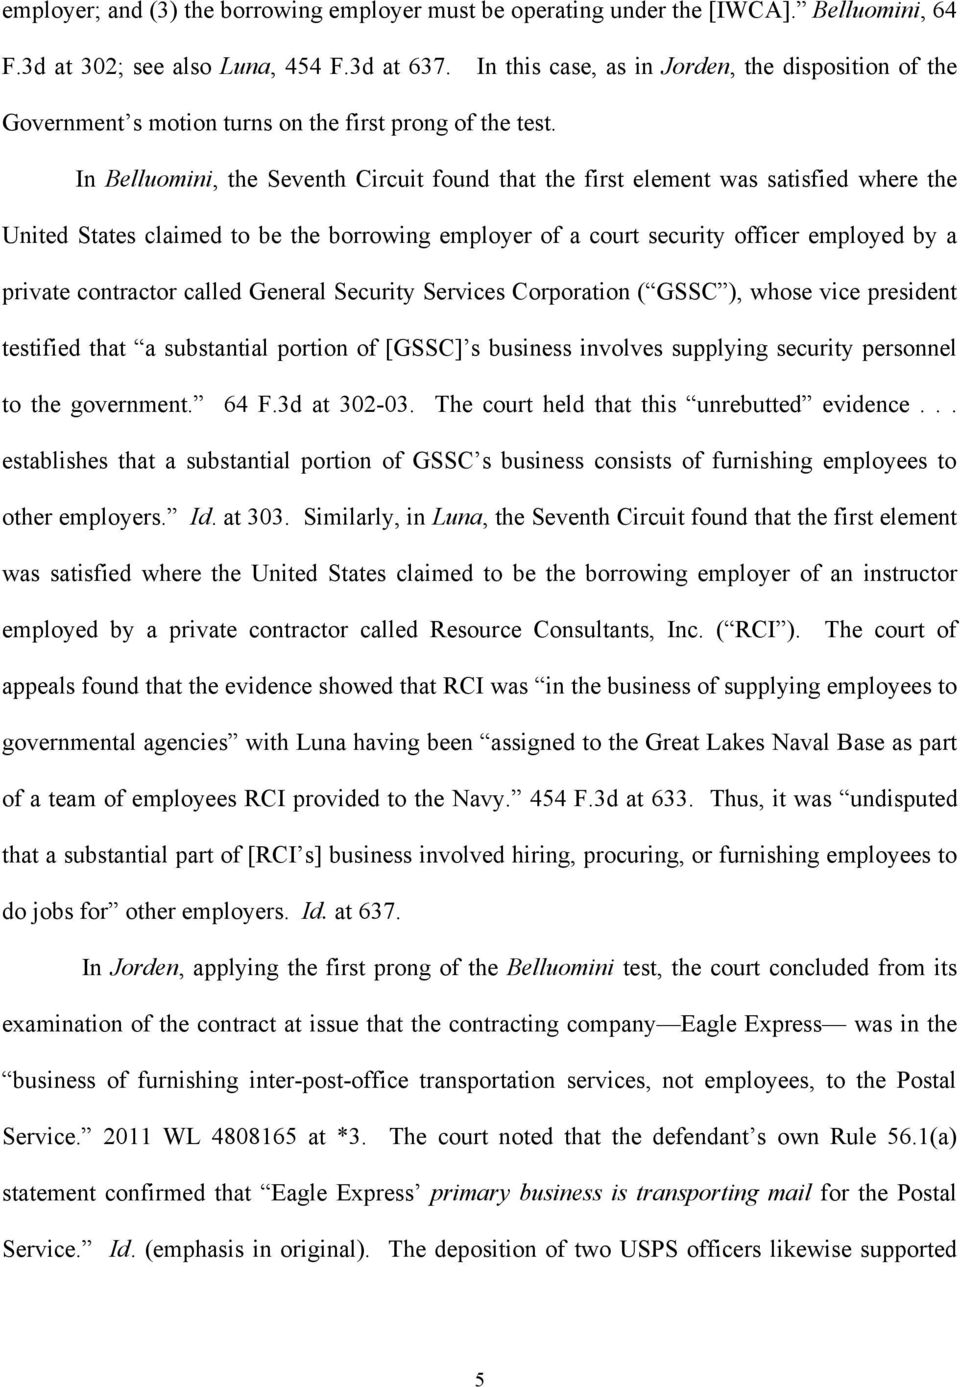 In Belluomini, the Seventh Circuit found that the first element was satisfied where the United States claimed to be the borrowing employer of a court security officer employed by a private contractor